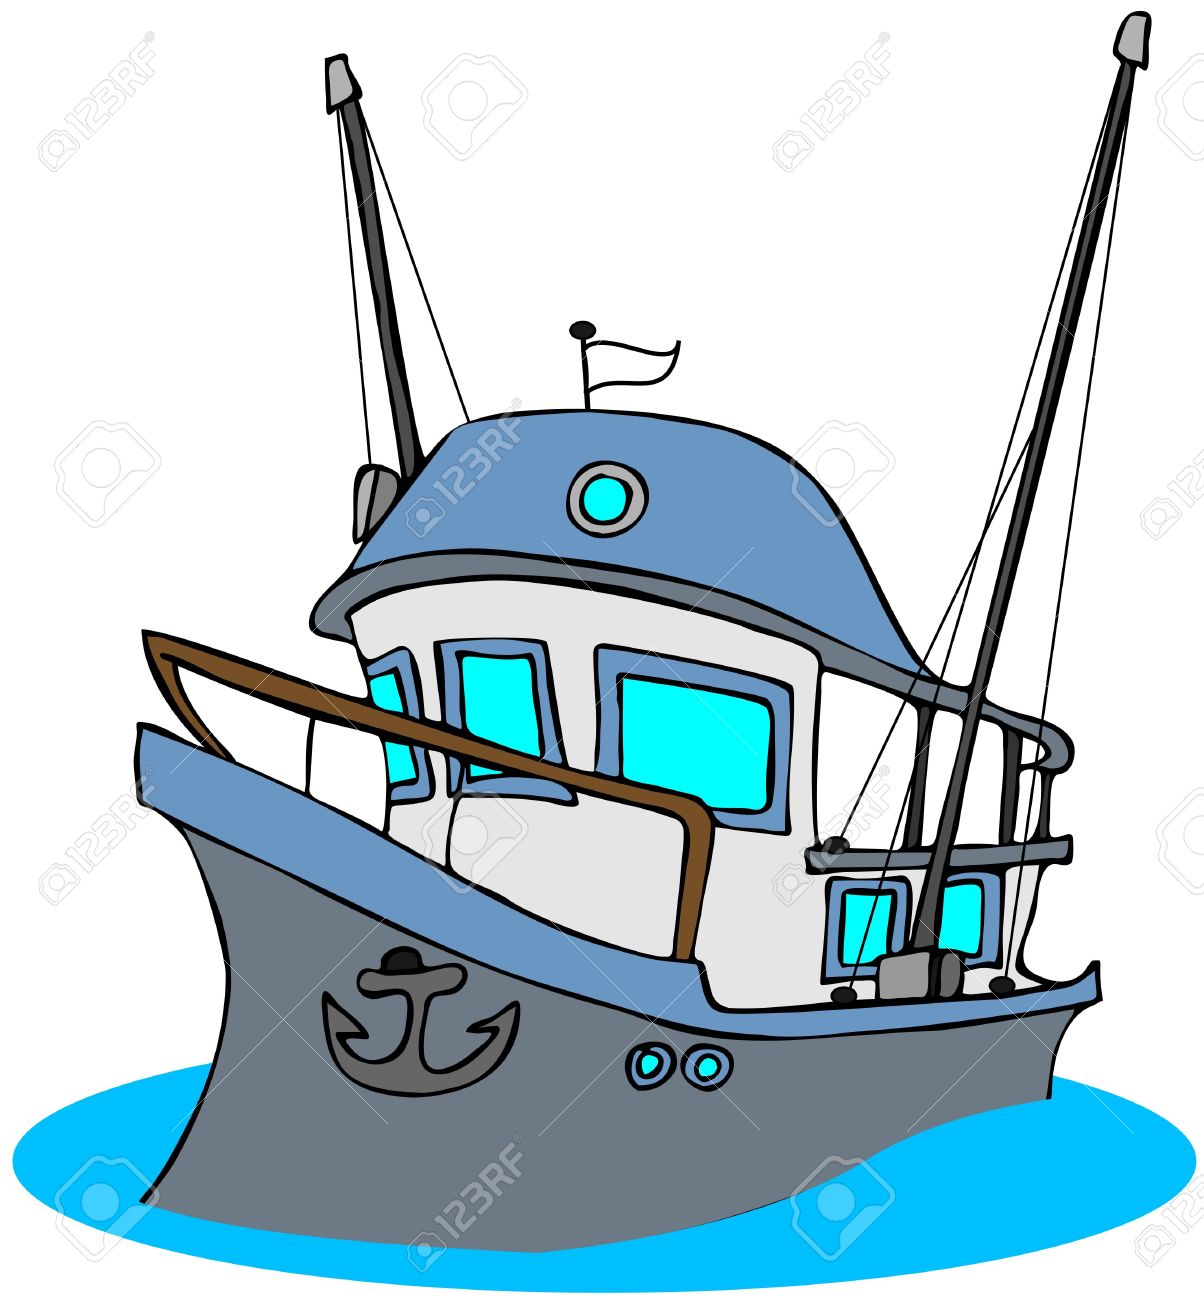 Boat clipart fishing trawler Cartoon clipart collection Stock Trawler